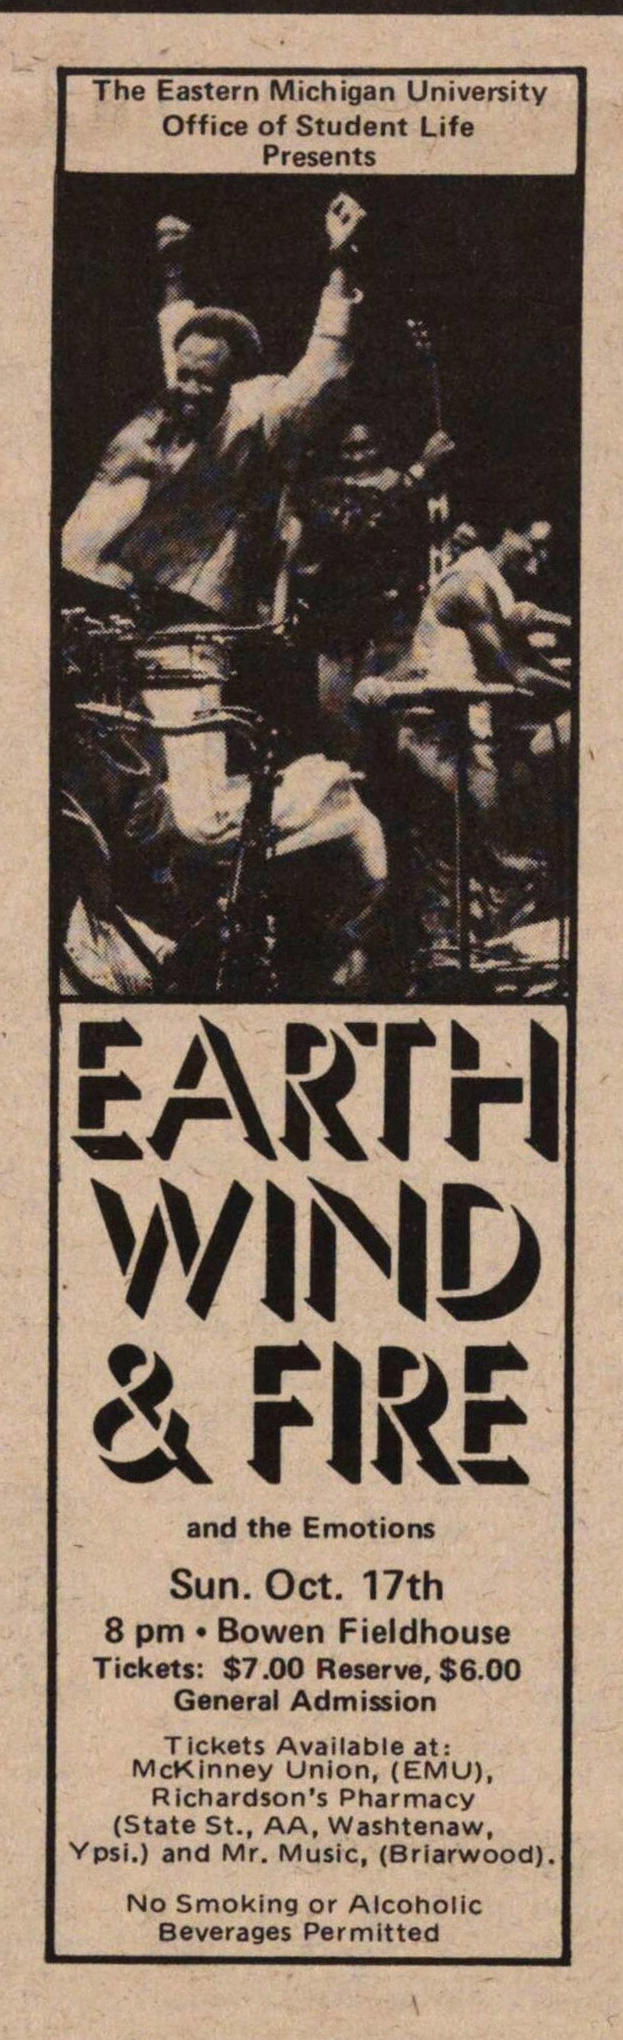 Earth Wind & Fire image